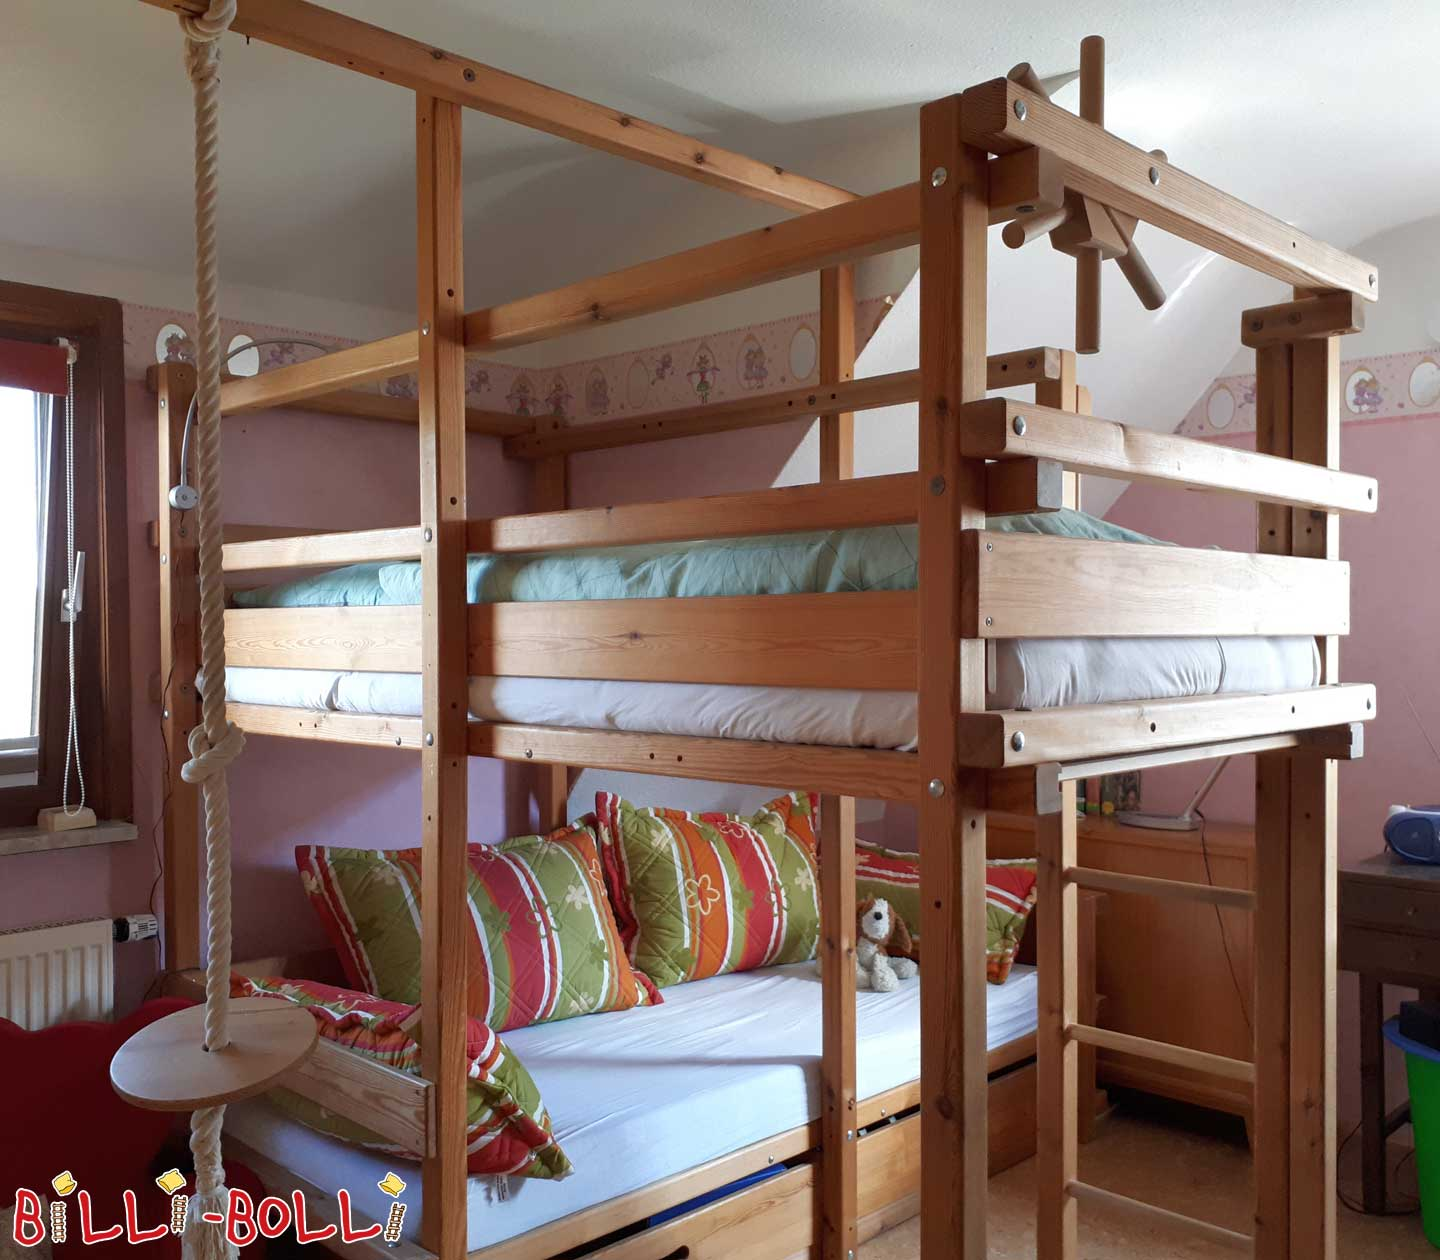 Bunk bedover corner (second hand bunk bed)